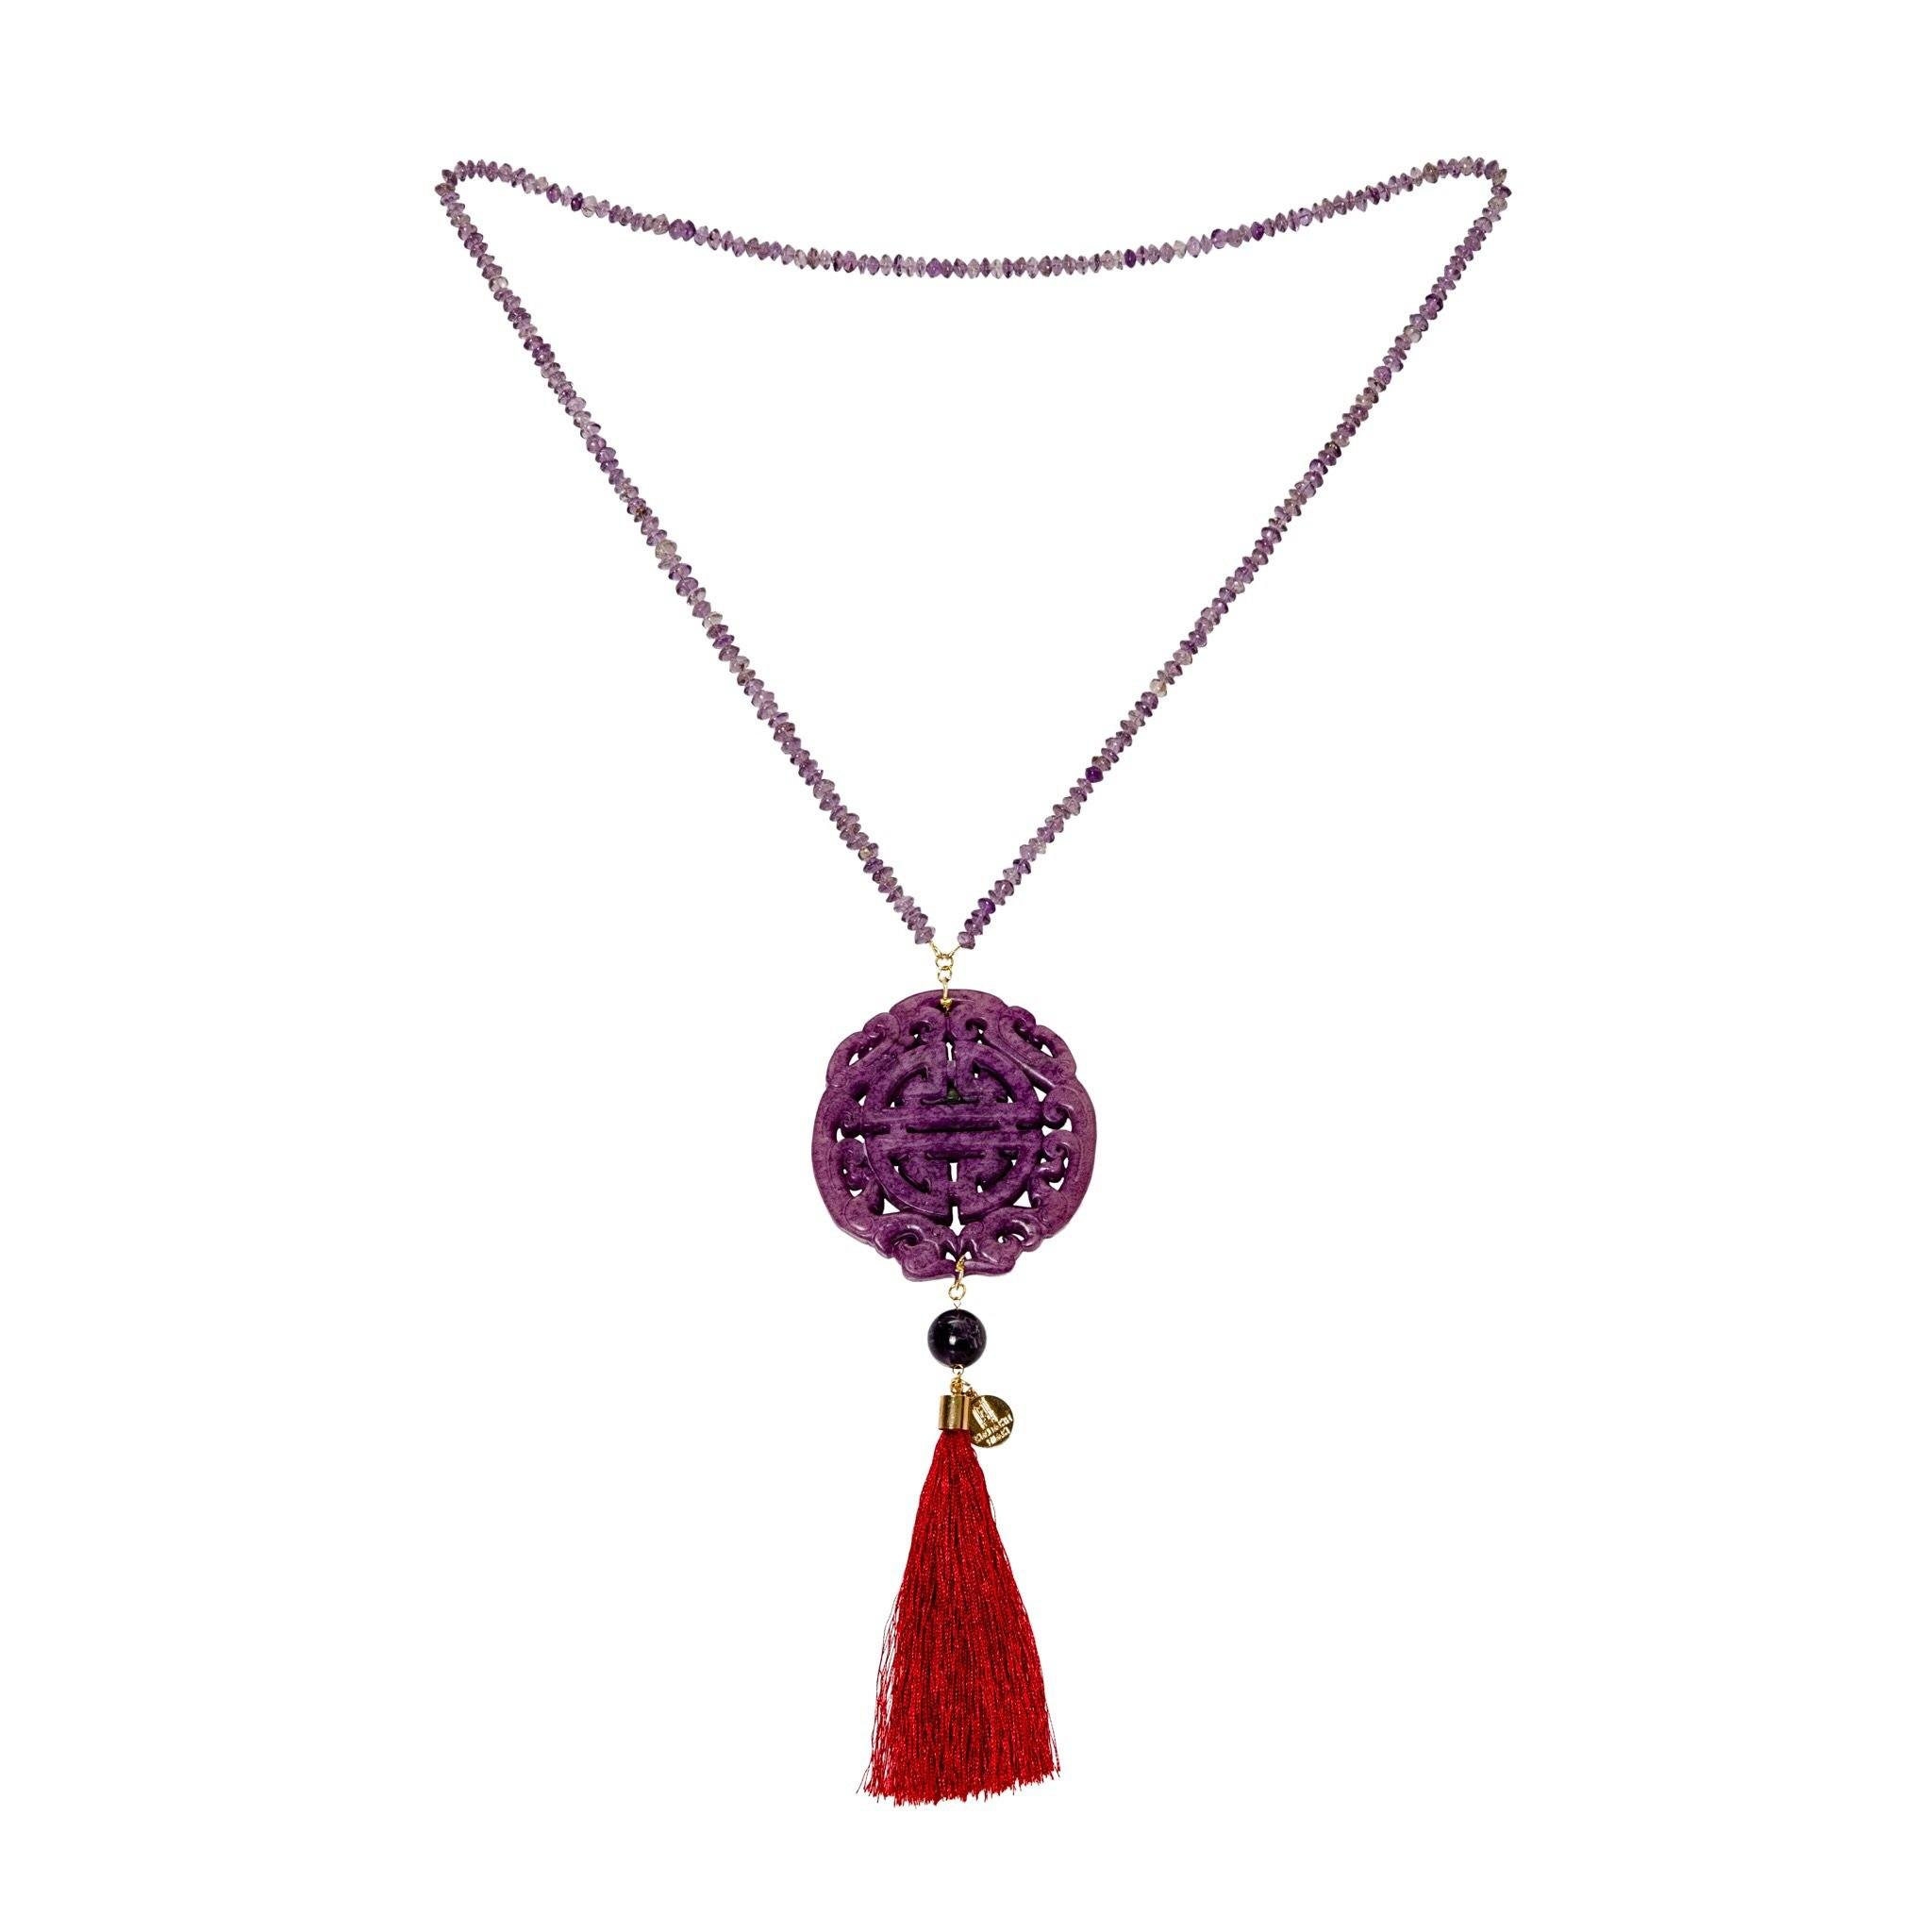 HONG KONG purple amethyst necklace